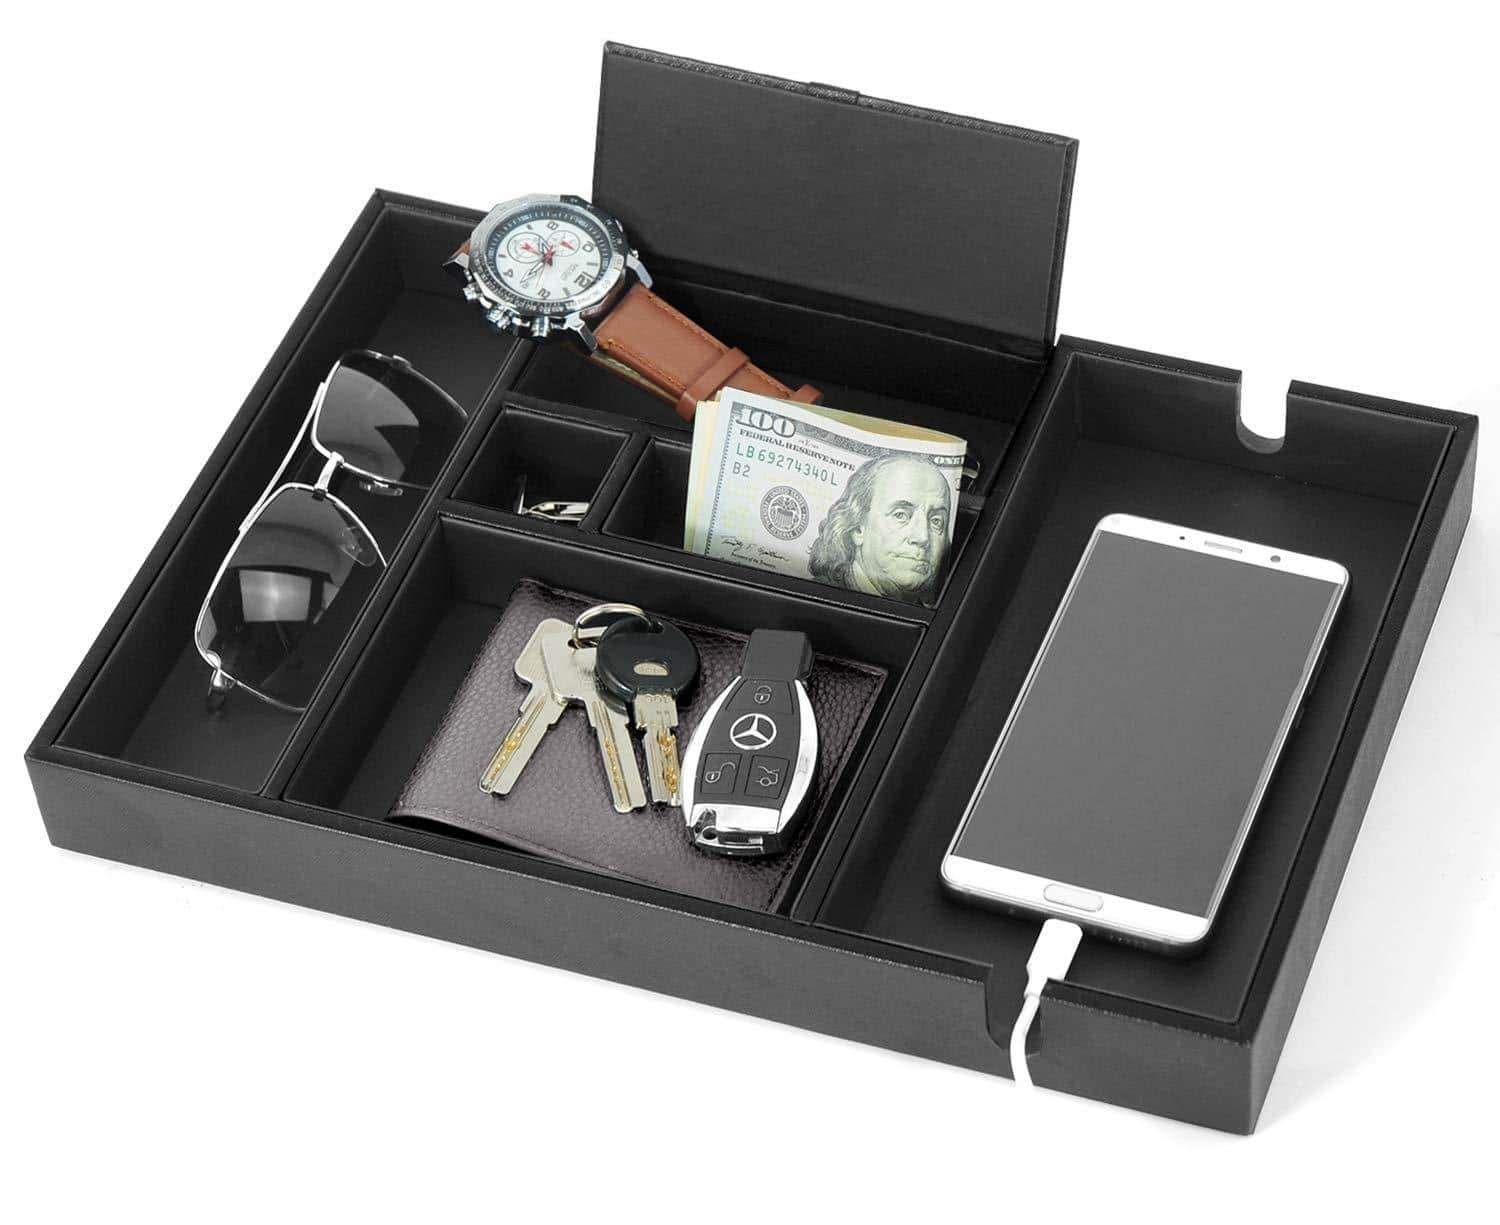 Try lifomenz co mens valet tray with charging station nightstand dresser organizer mens catchall tray for keys phone wallet coin jewelry sunglasses watch